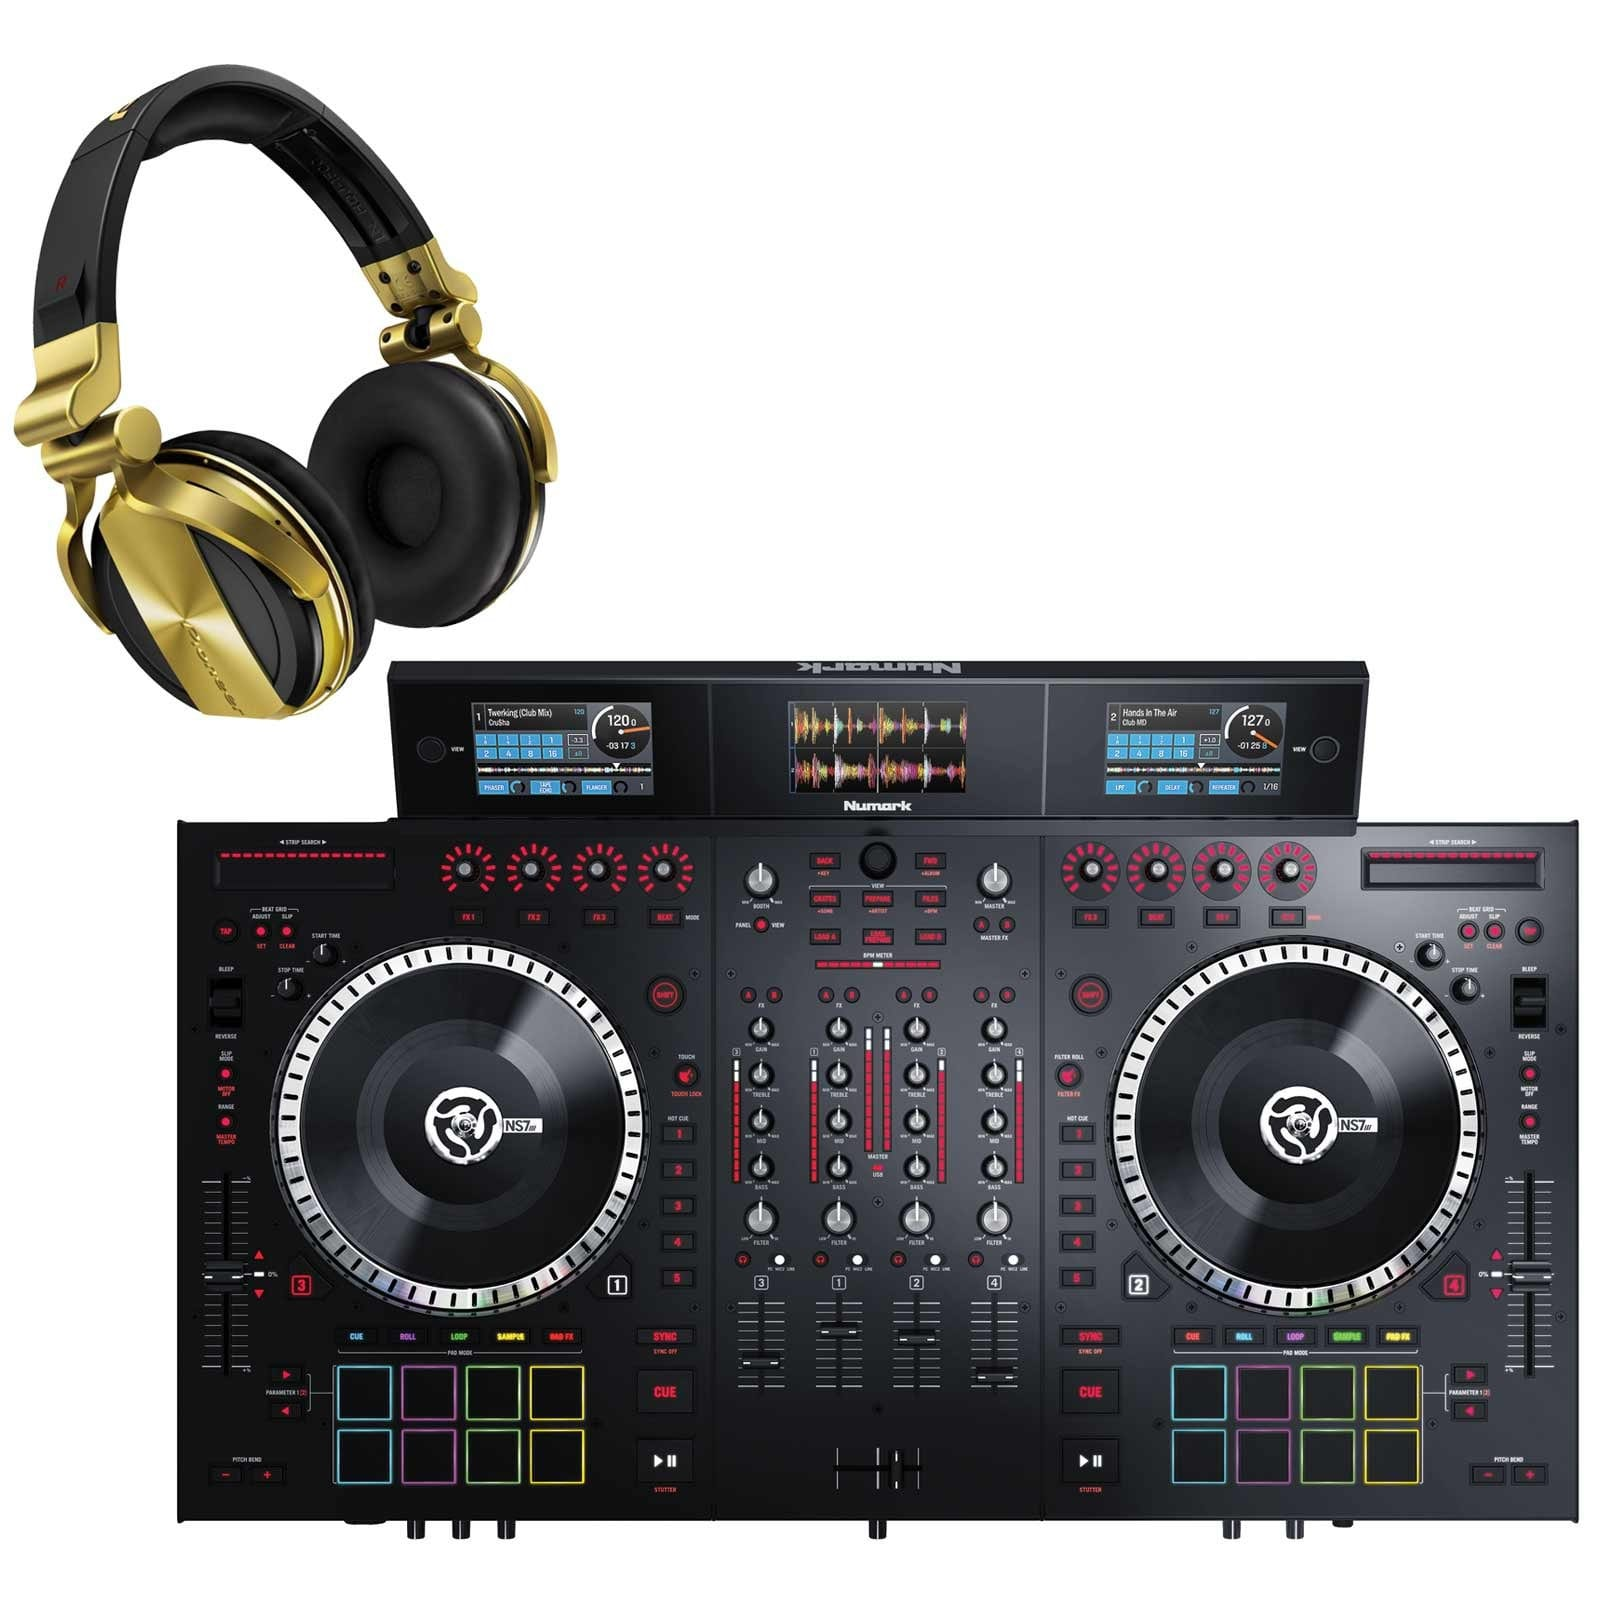 Numark NS7III 4-Channel Motorized DJ Controller & Mixer with